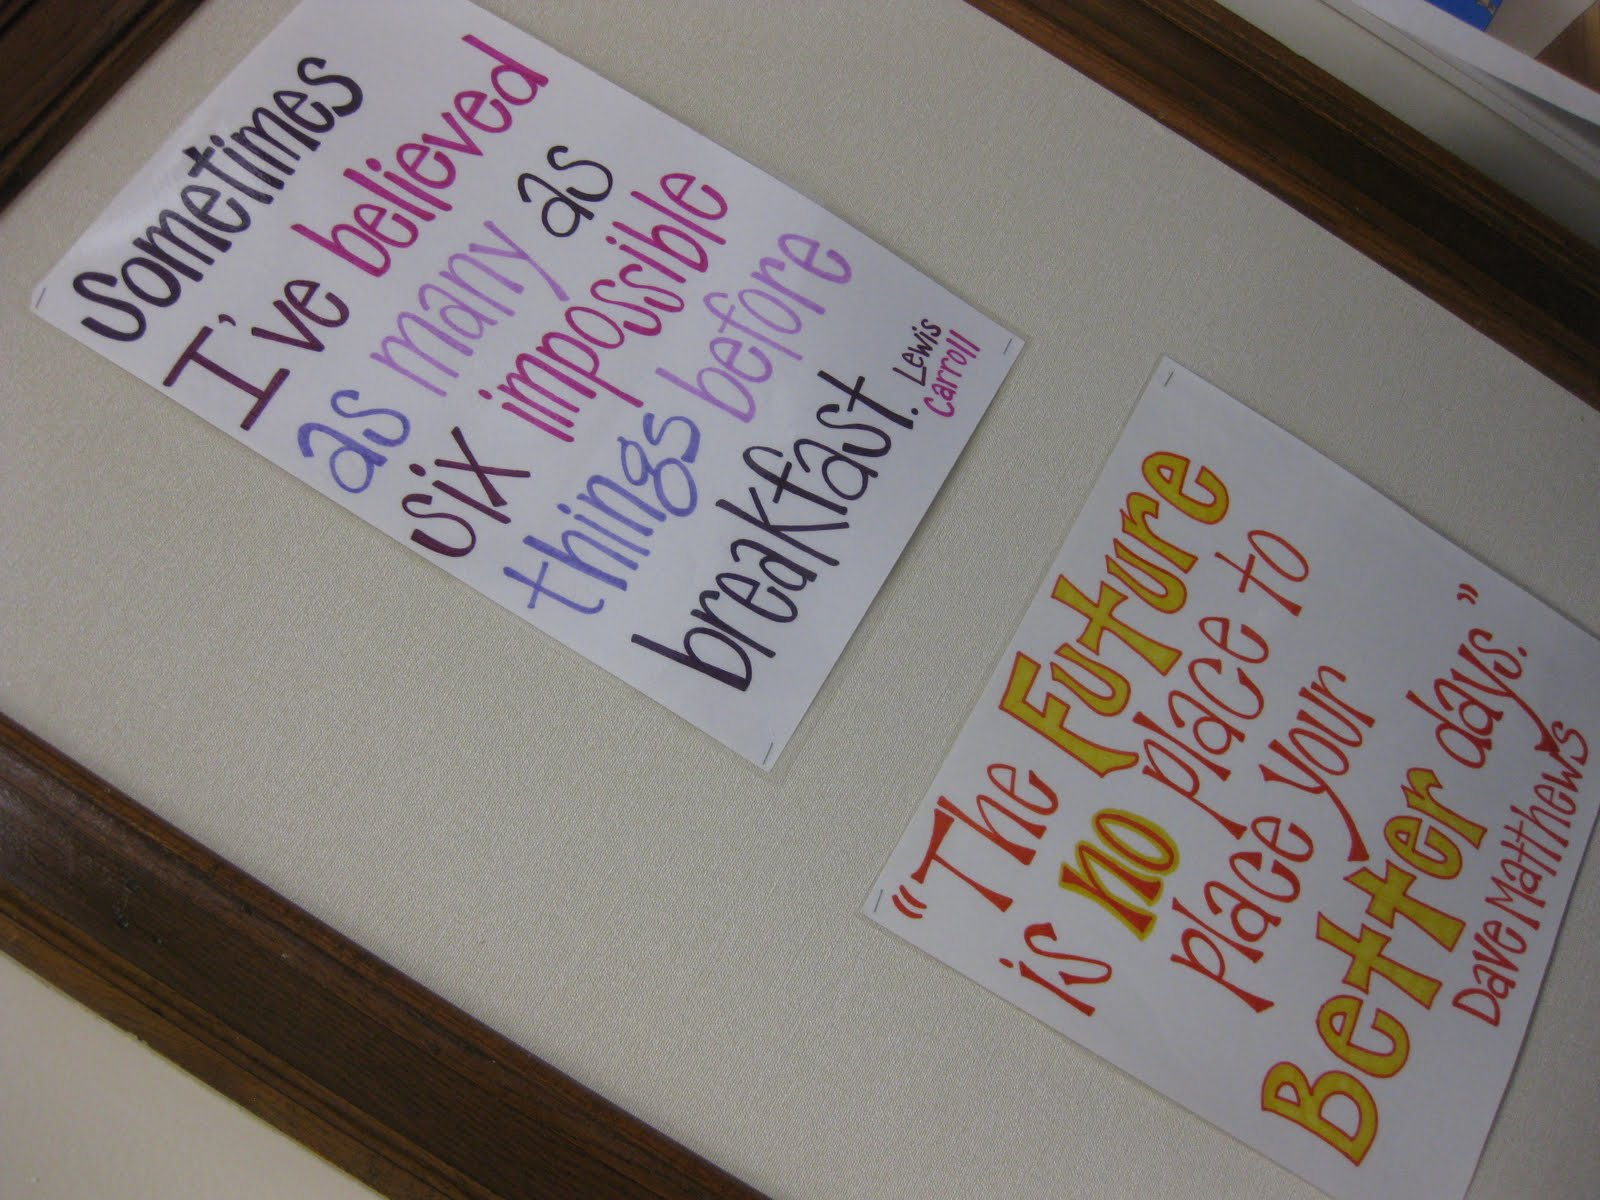 homemade basketball posters ideas swallow flies september - tierra